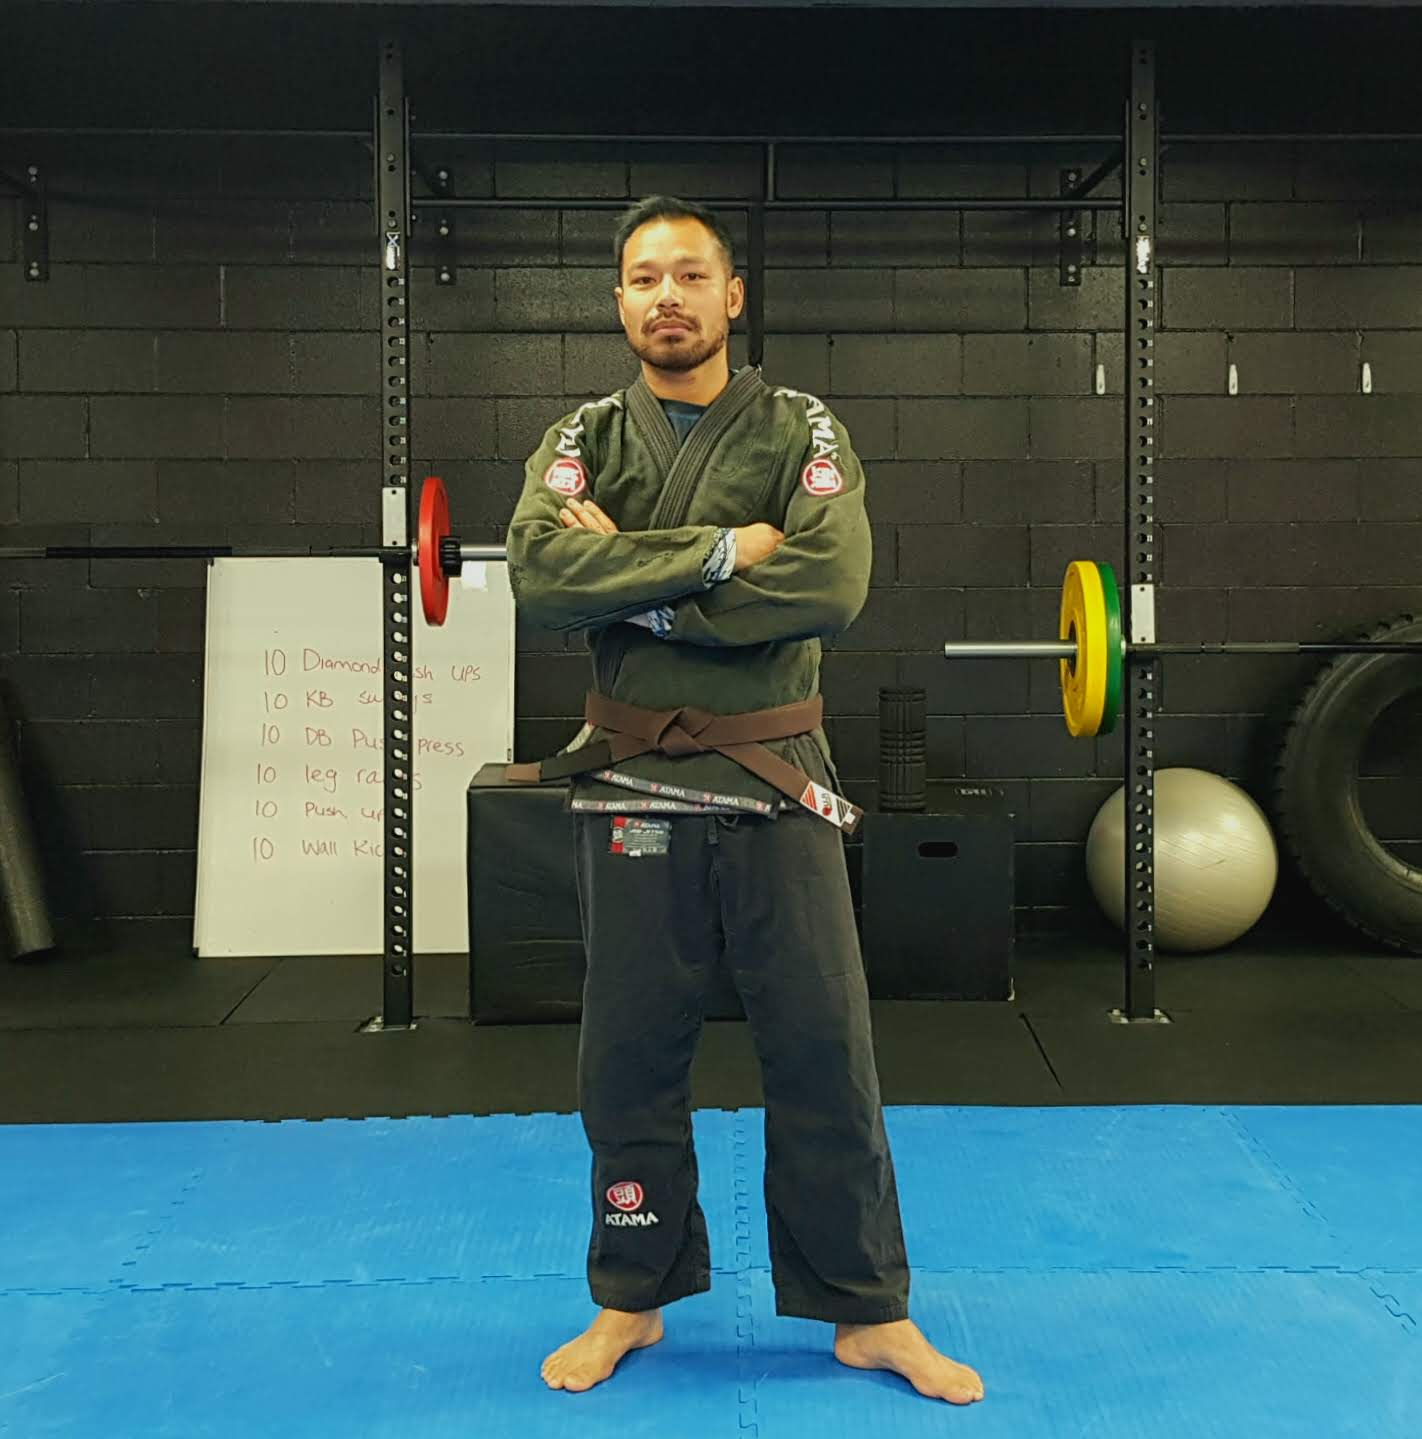 Phan Wilkie - Phan is our resident brown belt in Brazilian Jiu-Jitsu. He was awarded his brown belt by Geoff Grant - 3rd degree black belt under the Will Machado affiliation headed by John Will, in April 2019.Phan has been seriously involved in BJJ since 2010. After his first session, Phan quickly fell in love with BJJ due to the breadth and depth of the art, as well as the other benefits which carry over to the outside of the mat (problem-solving, tenacity and fitness to name a few) or what he calls 'BJJ Lifestyle'.Having moved from Auckland recently for the lifestyle and scenery that the Wairarapa has to offer, he's keen to get involved with the community by helping those who are keen to get started on the BJJ journey and strengthen their BJJ technique.